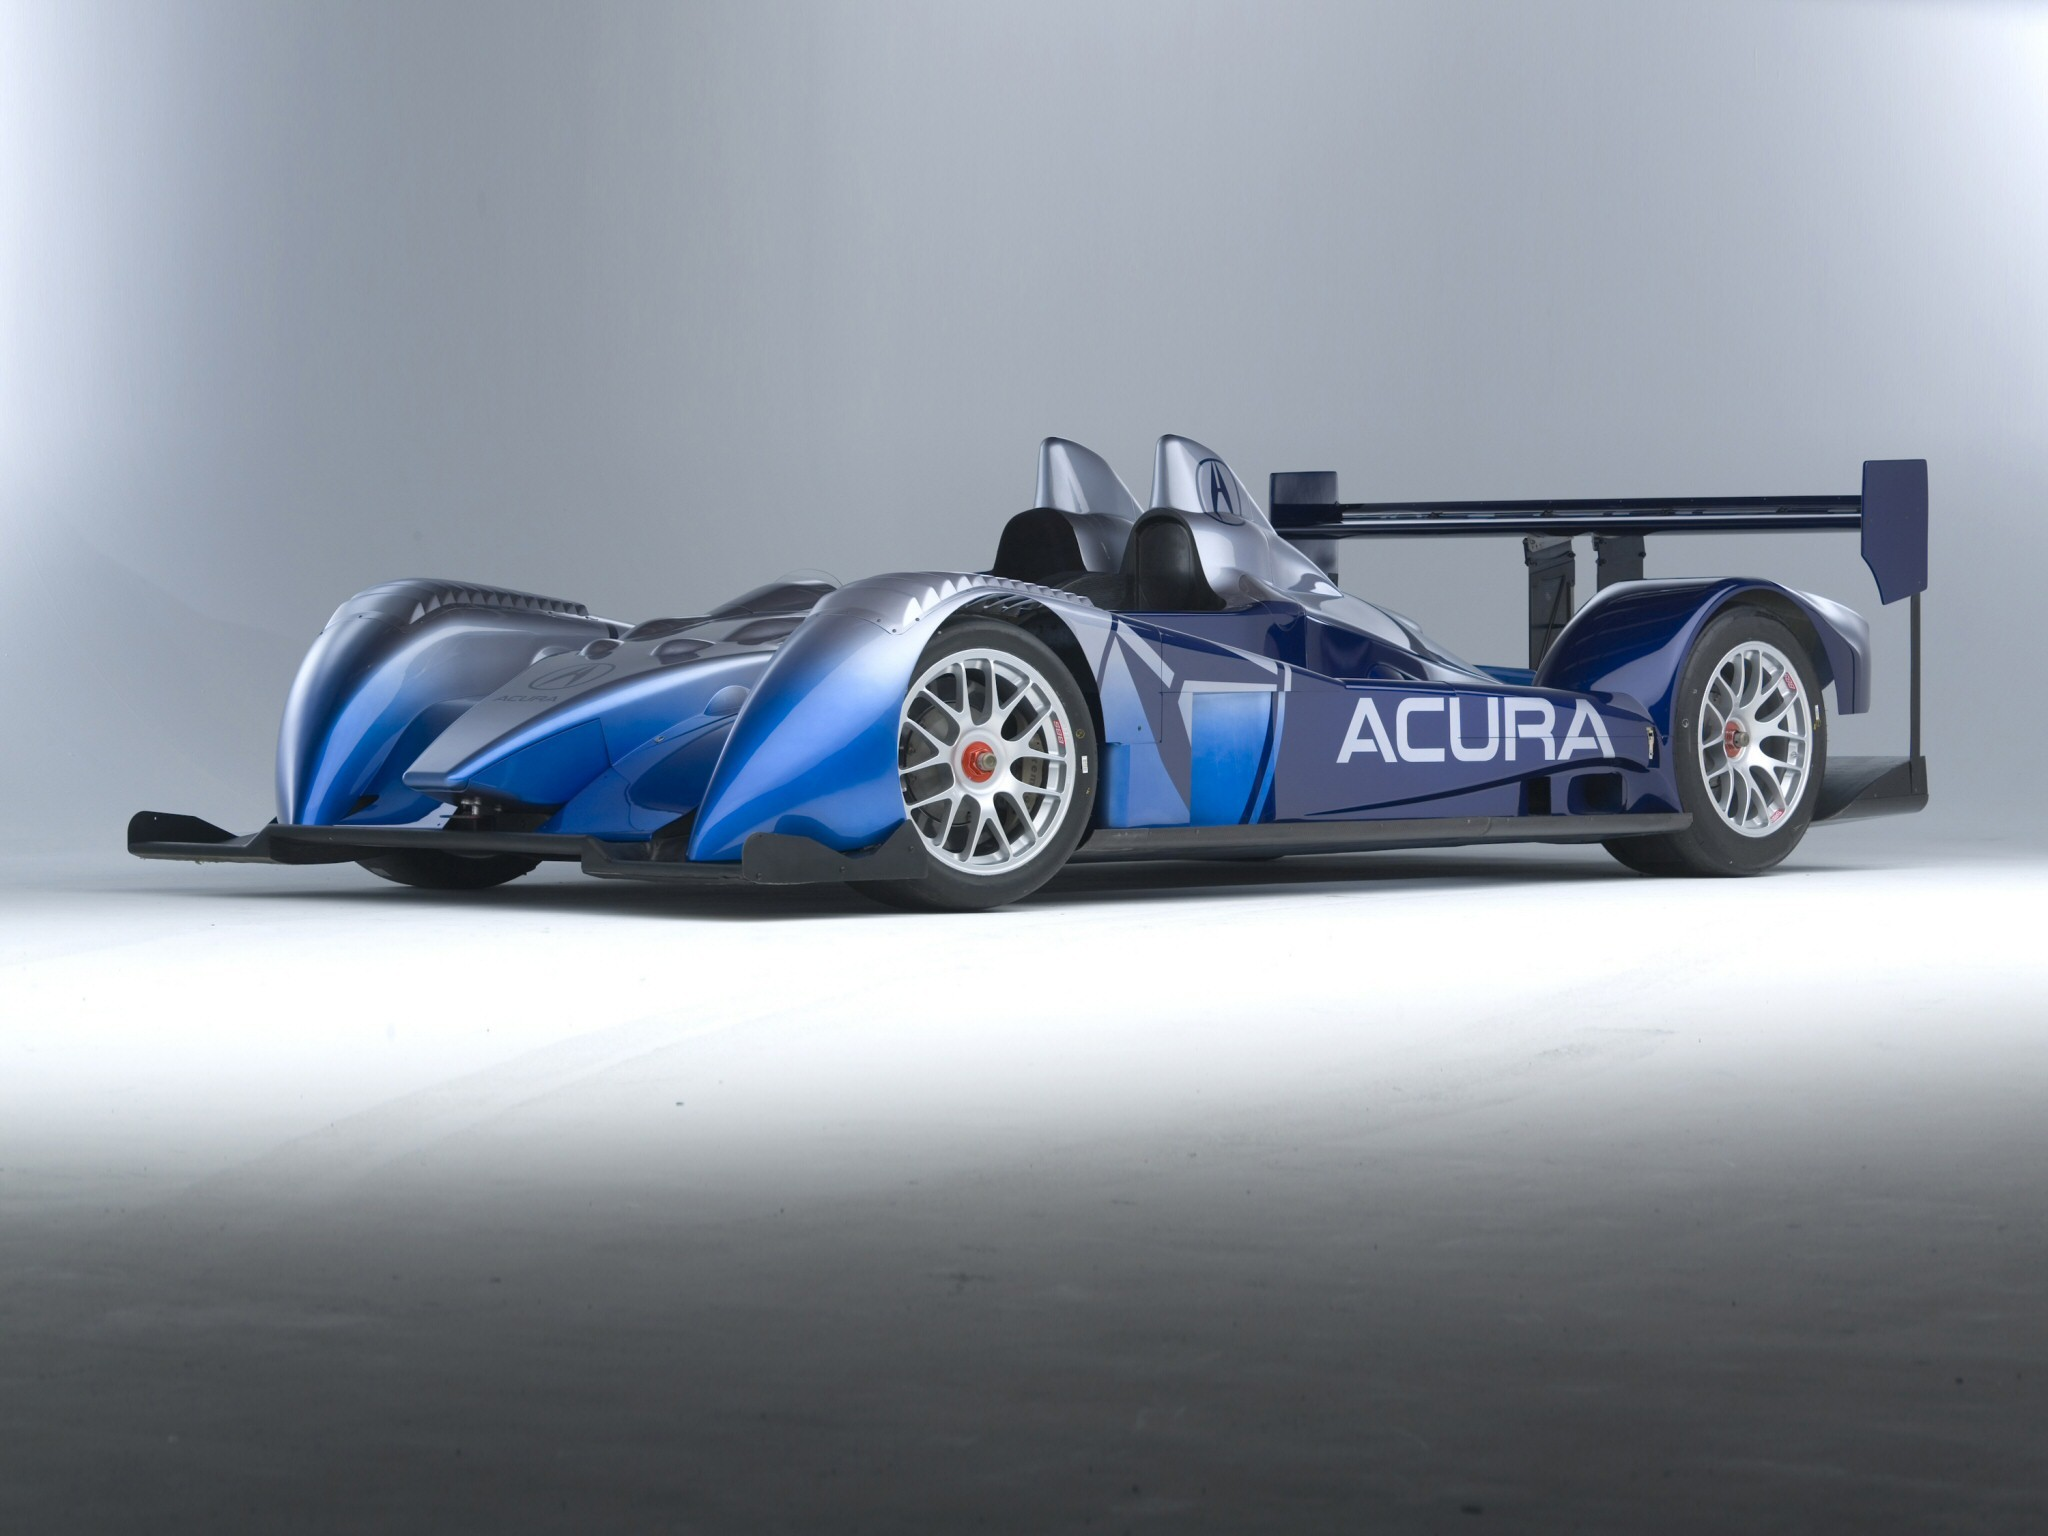 2006 Acura ALMS Race Car Concept